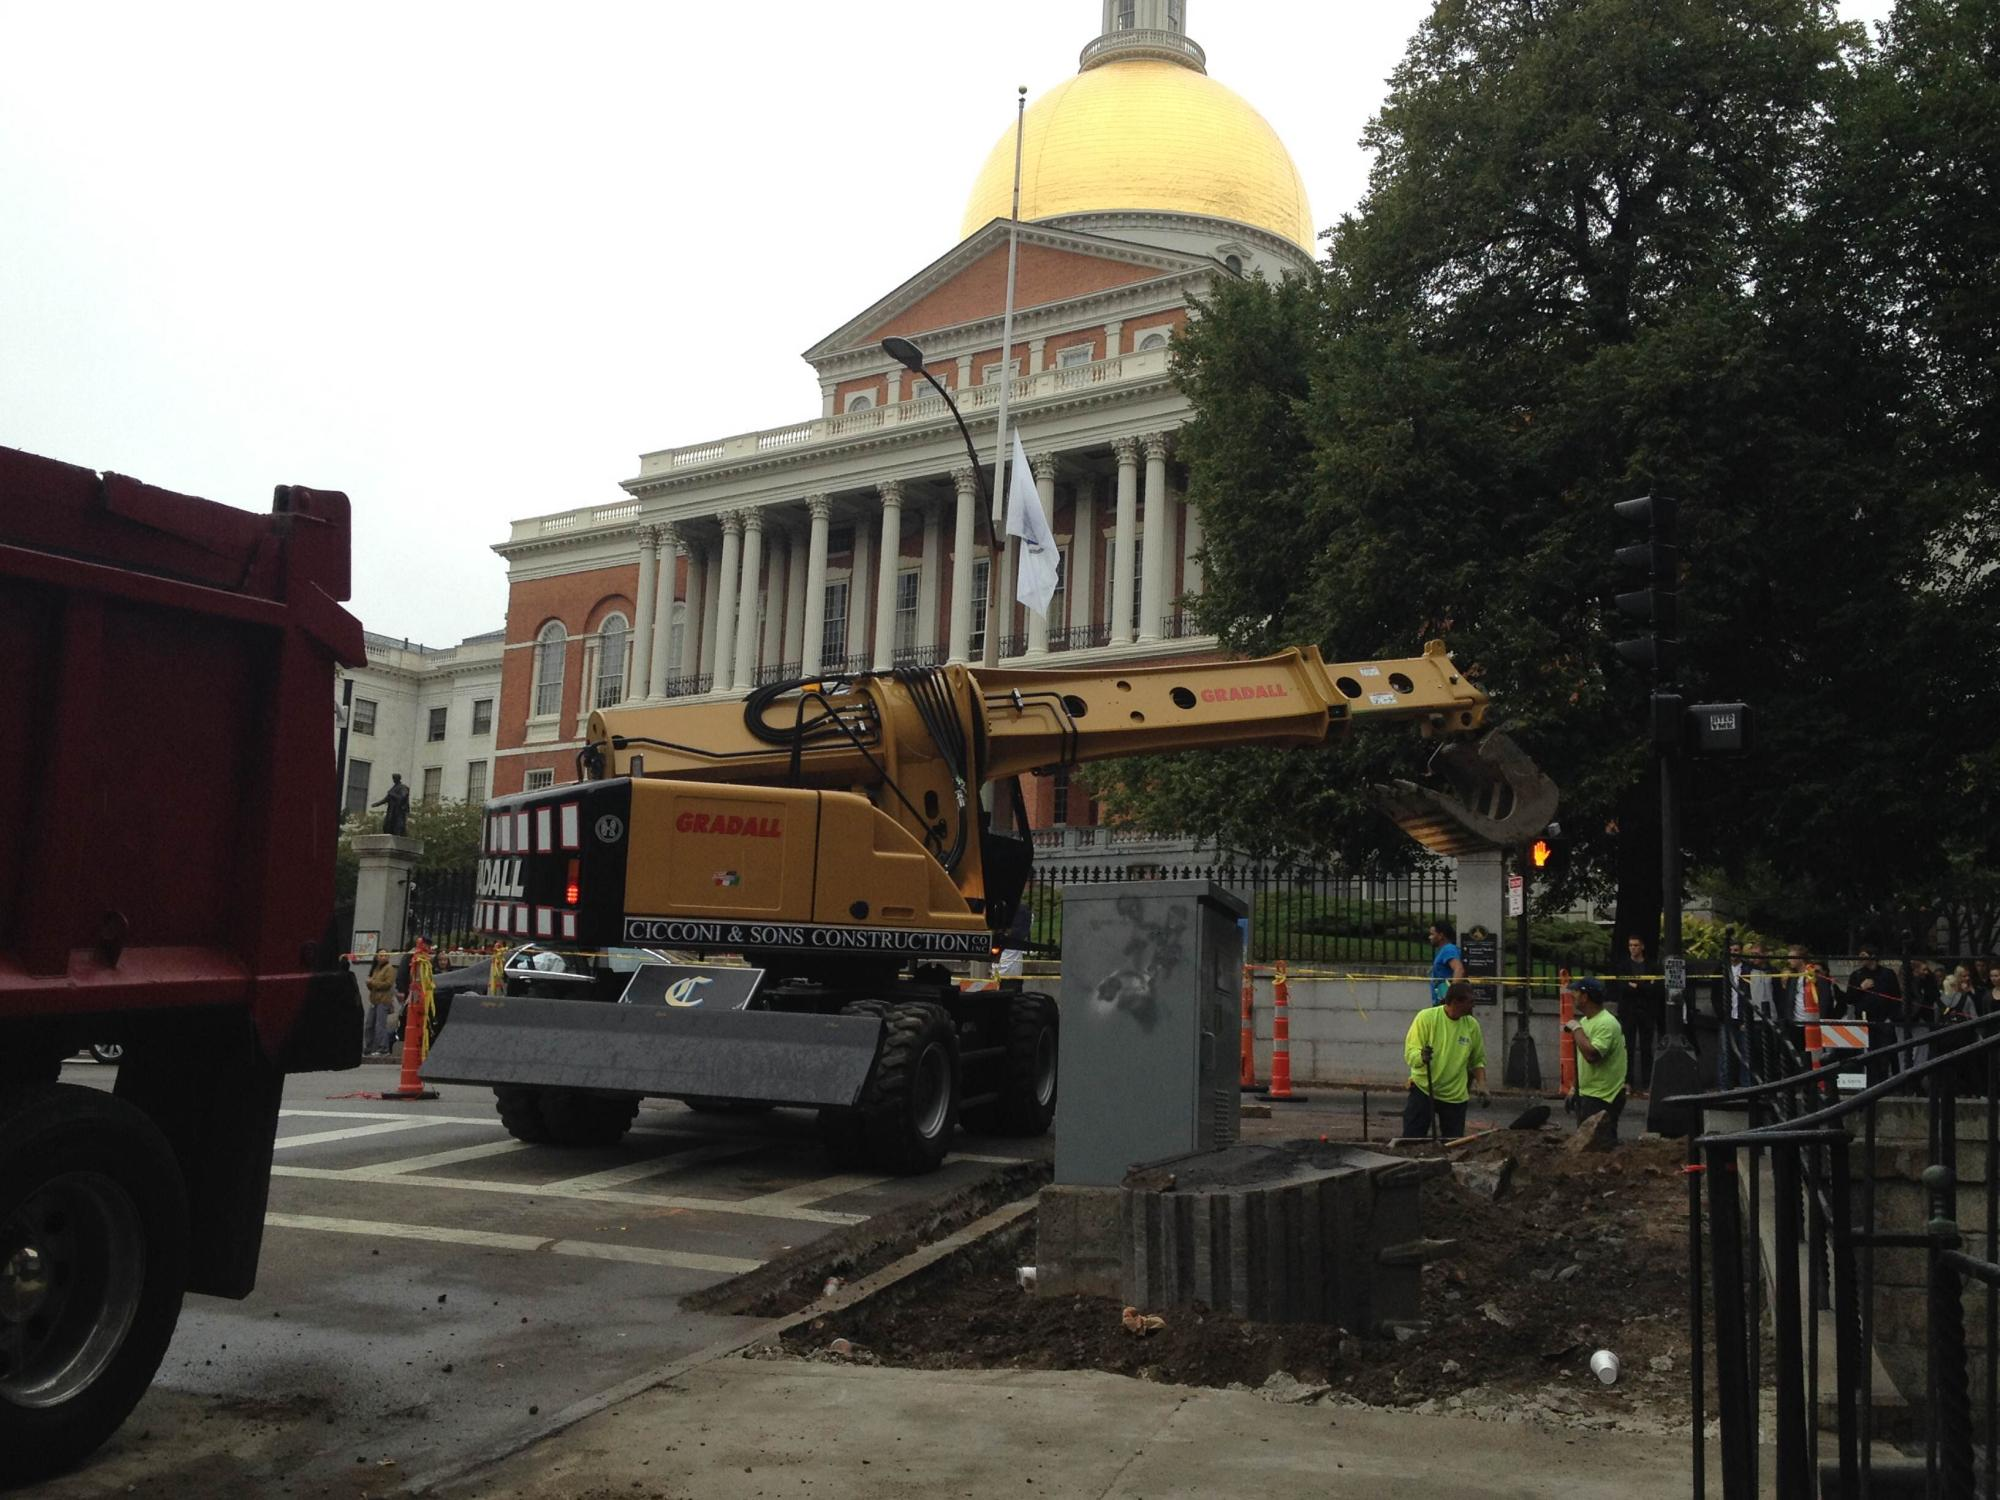 Working outside the Massachusetts State House